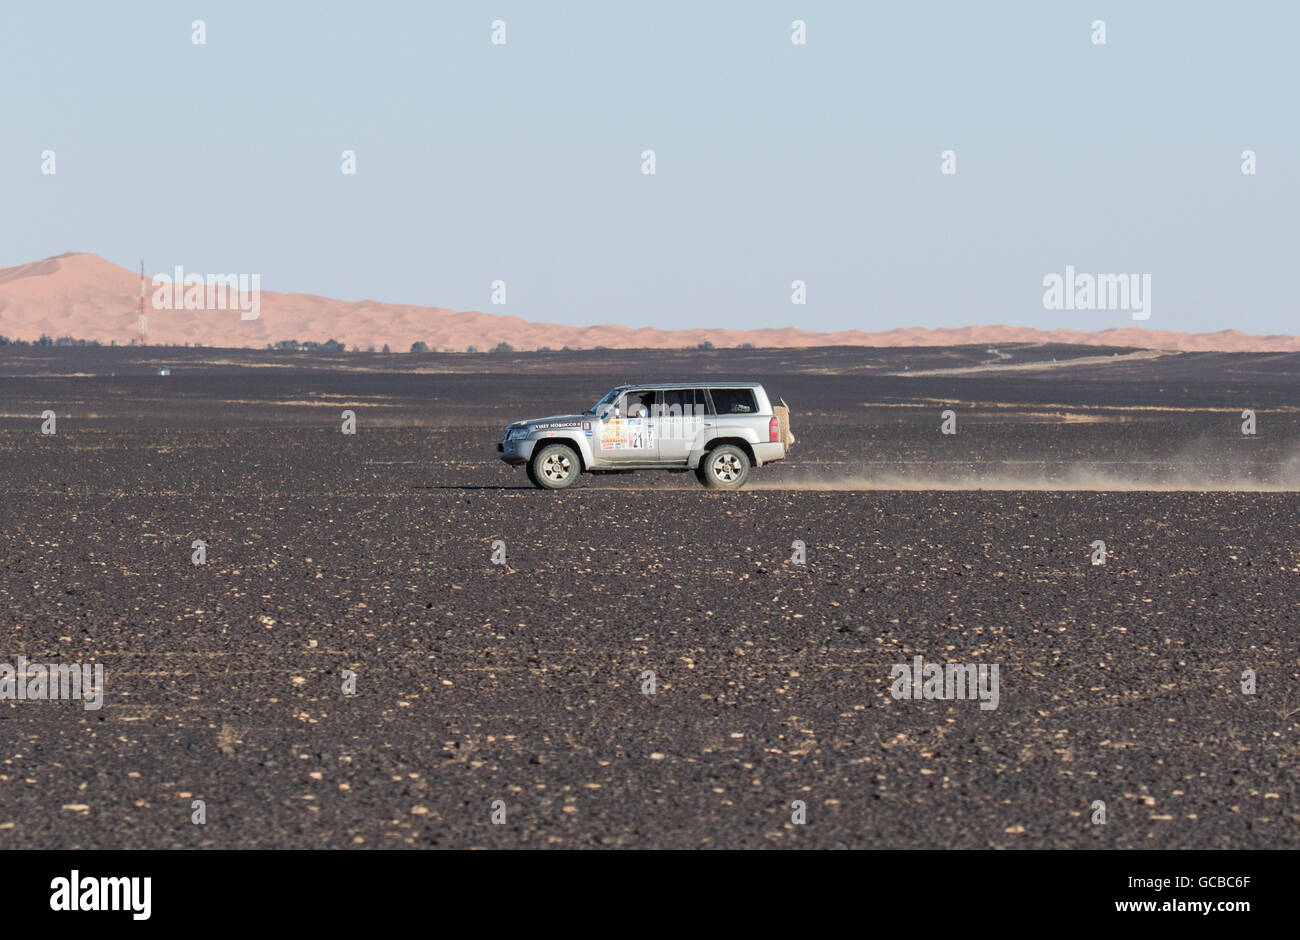 Silver Range Rover traveling in stony  Morocco desert, heading right to left, blue sky and mountains in background. - Stock Image